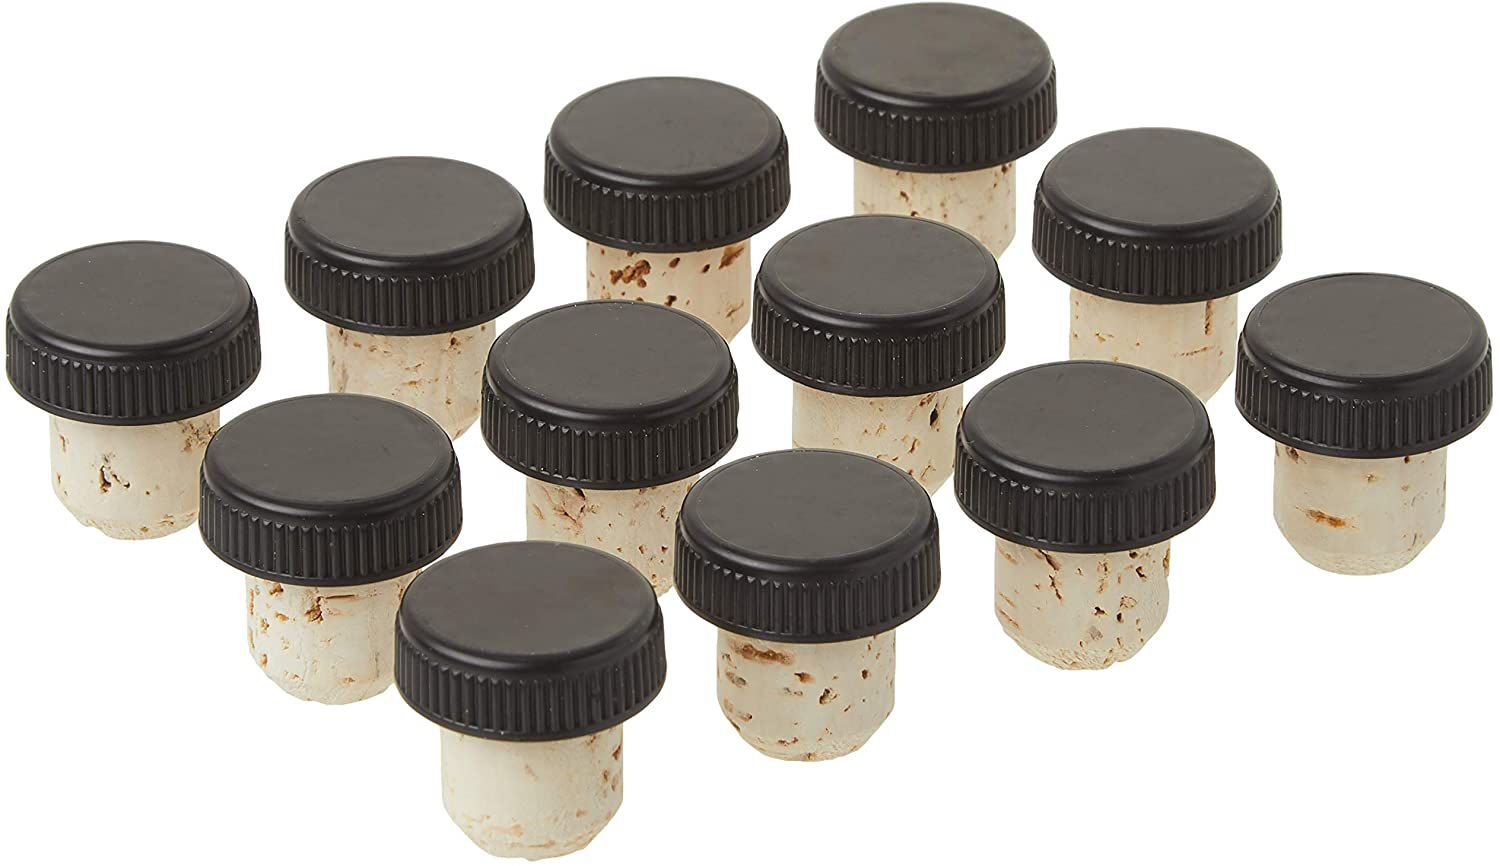 North Mountain Supply Bar Natural Corks with Plastic Tops, Pack of 12